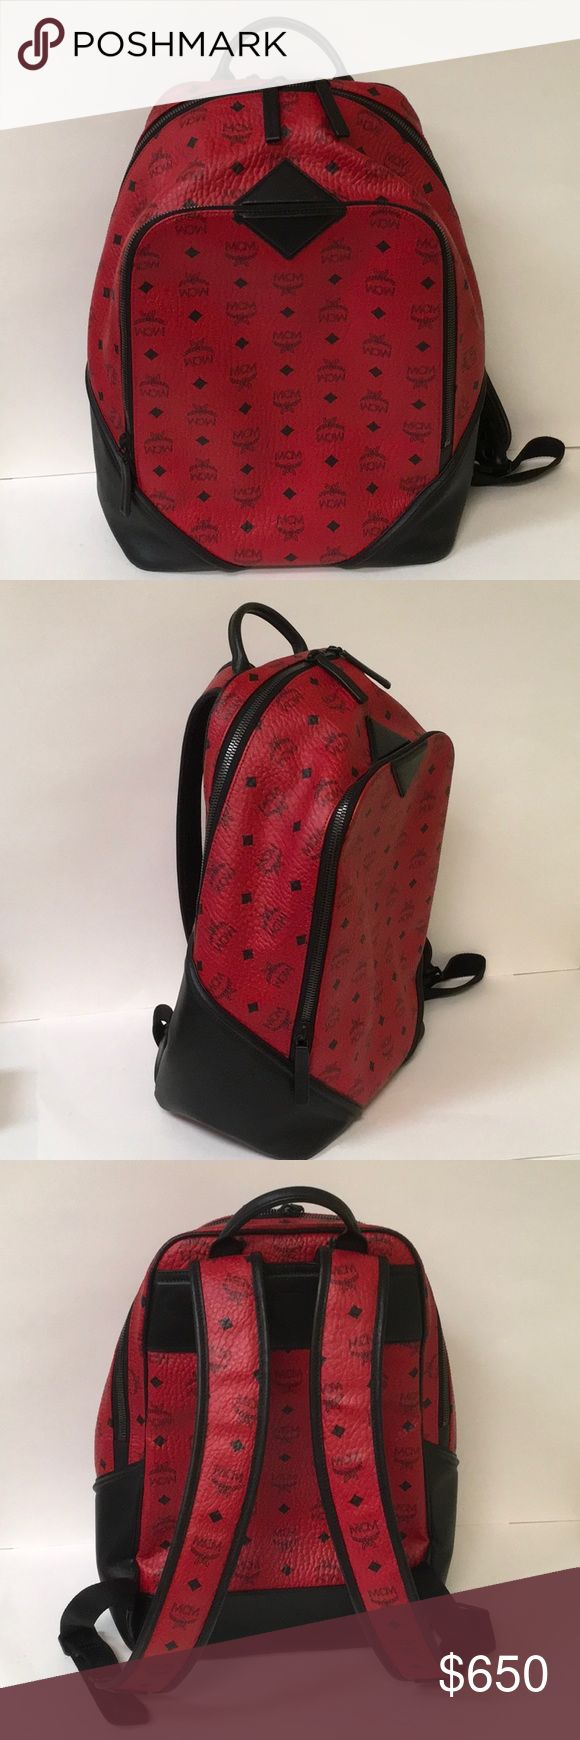 """MCM Duke Visetos Backpack Up for sale is a preowned MCM Duke Visetos Backpack in excellent, clean condition with no major wear and only showing minor signs of prior use. The Leather on the interior is velvety soft.  The exterior is in great shape. It measures 16"""" x 11"""" x 5"""". Authentic guaranteed. This is a rare, hard to find color. MCM Bags Backpacks"""